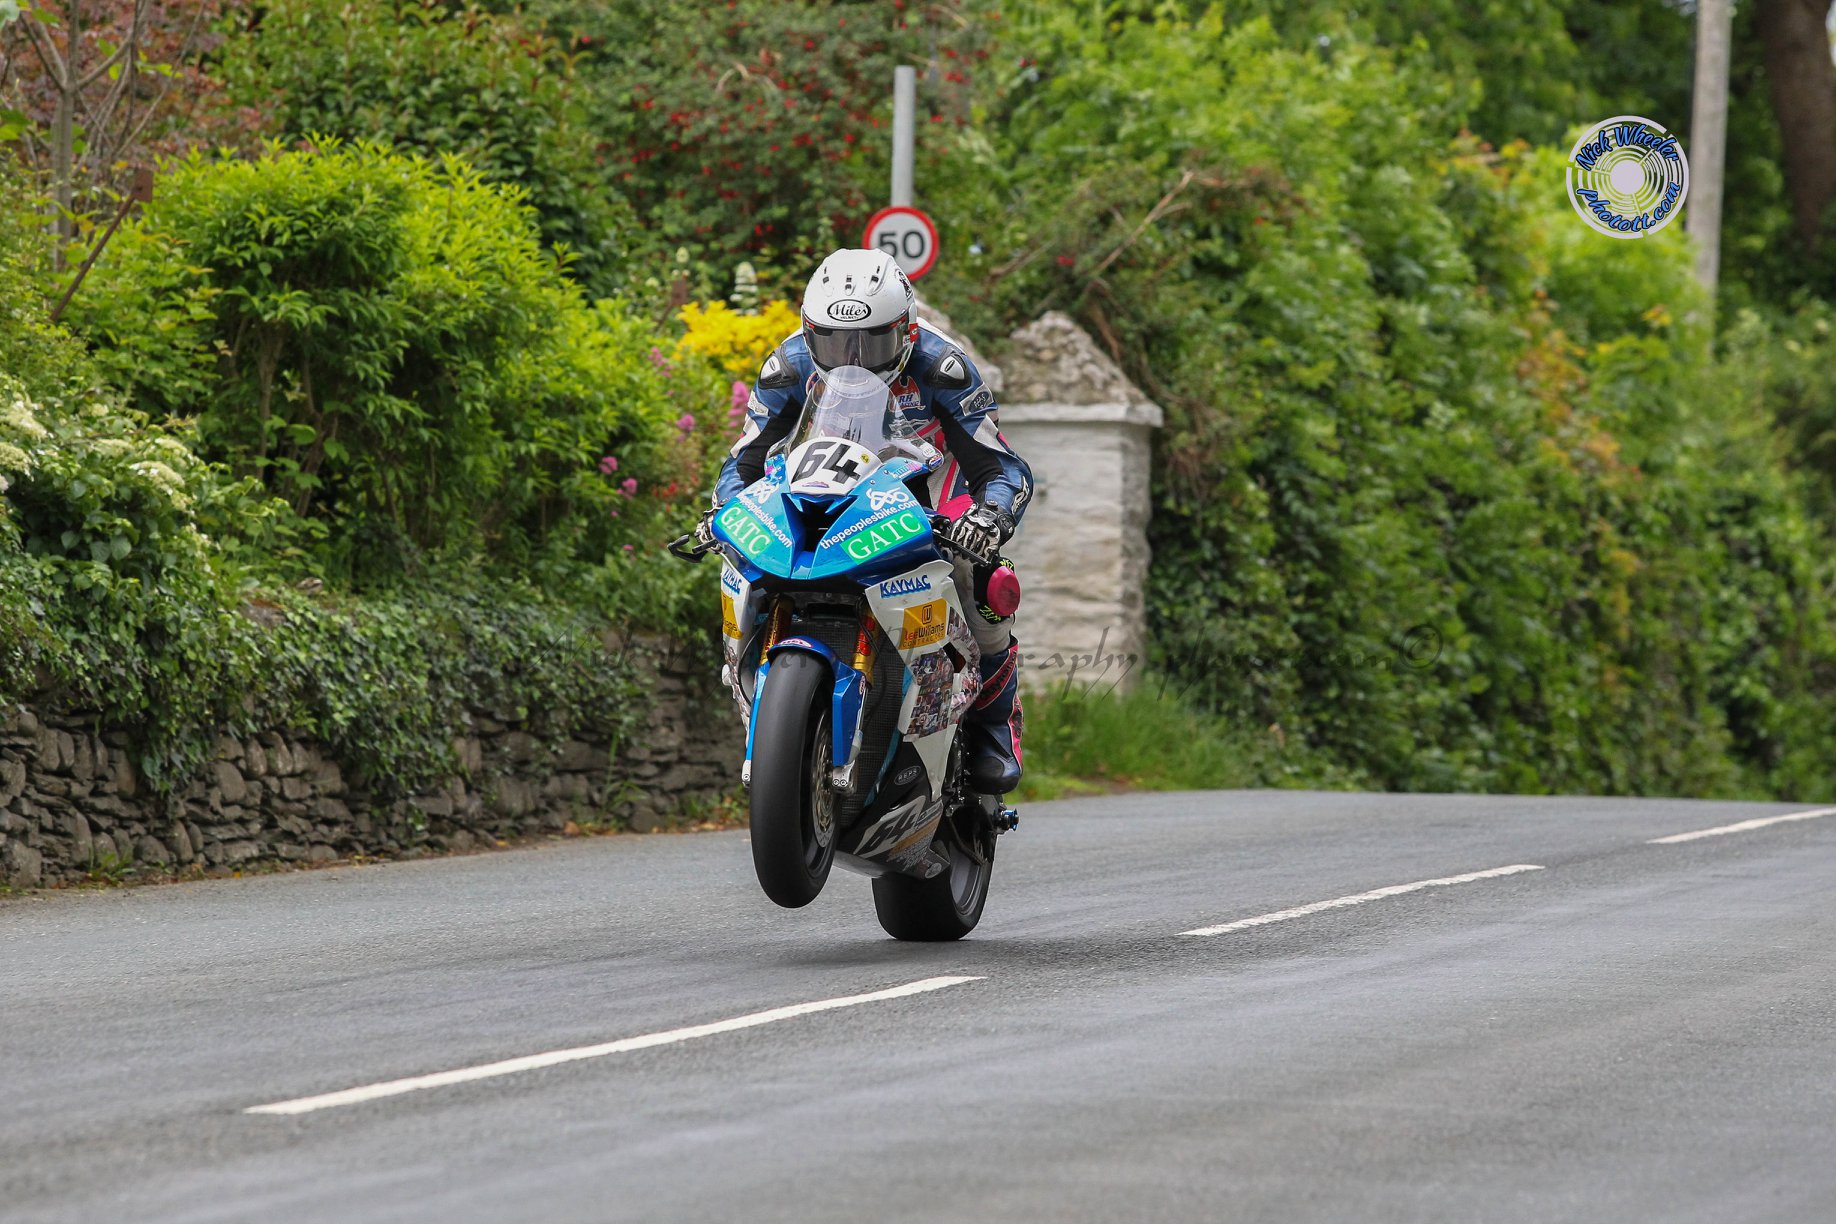 TT 2020 Latest: Exciting Announcements On The Horizon For Peoples Bike Team